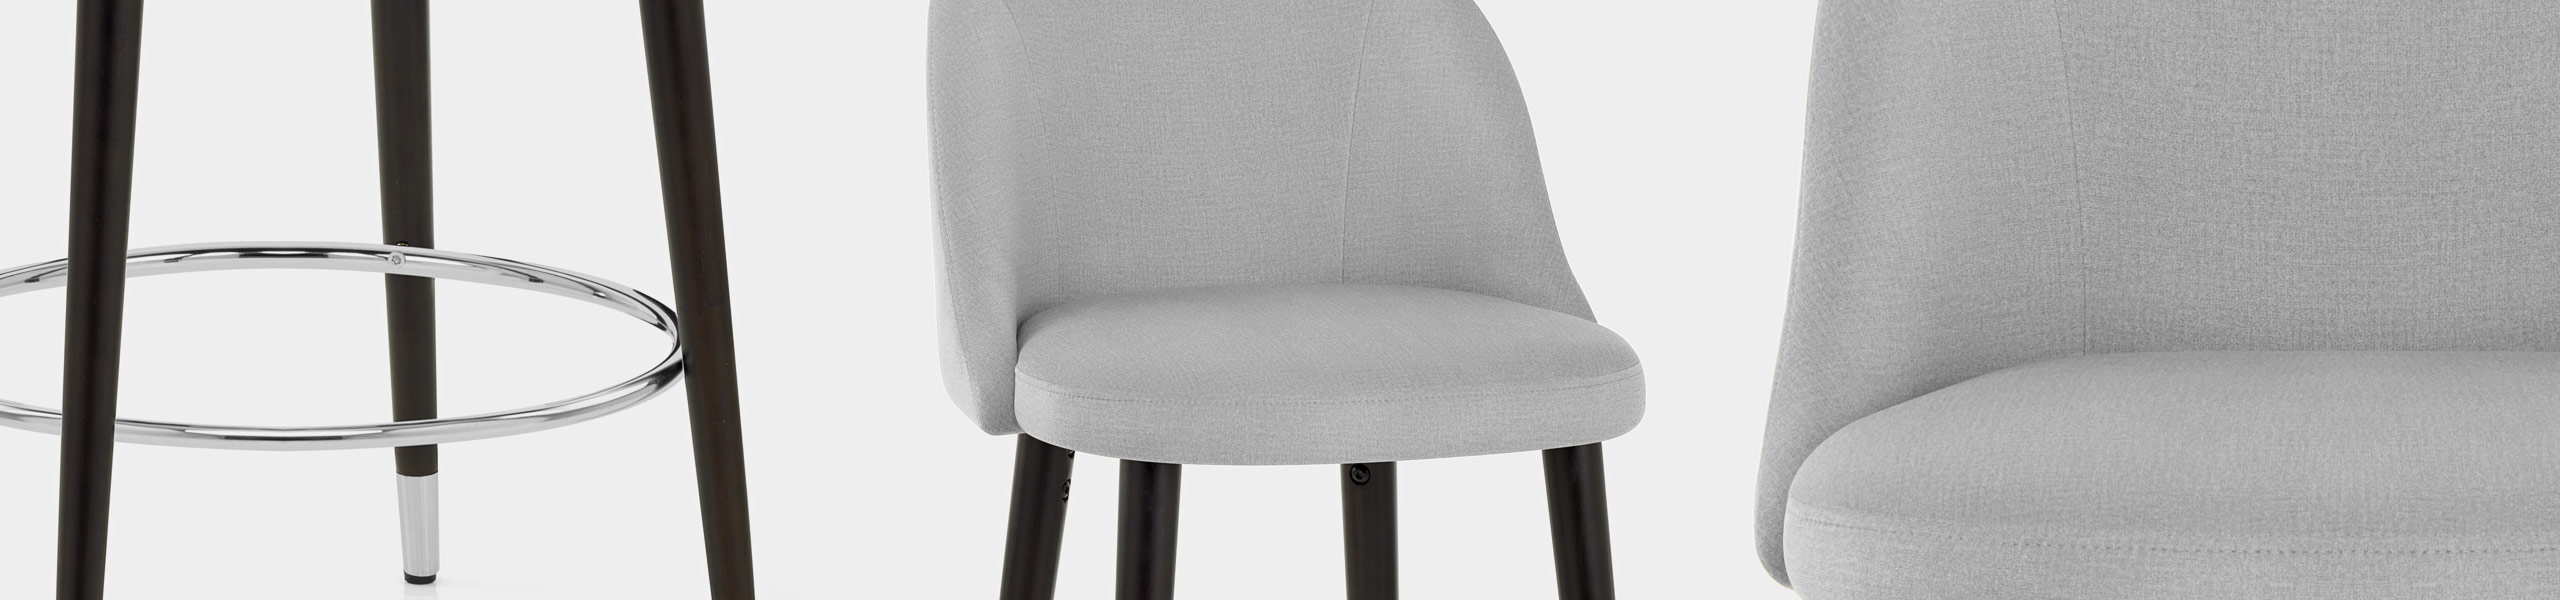 Polo Bar Stool Grey Fabric Video Banner